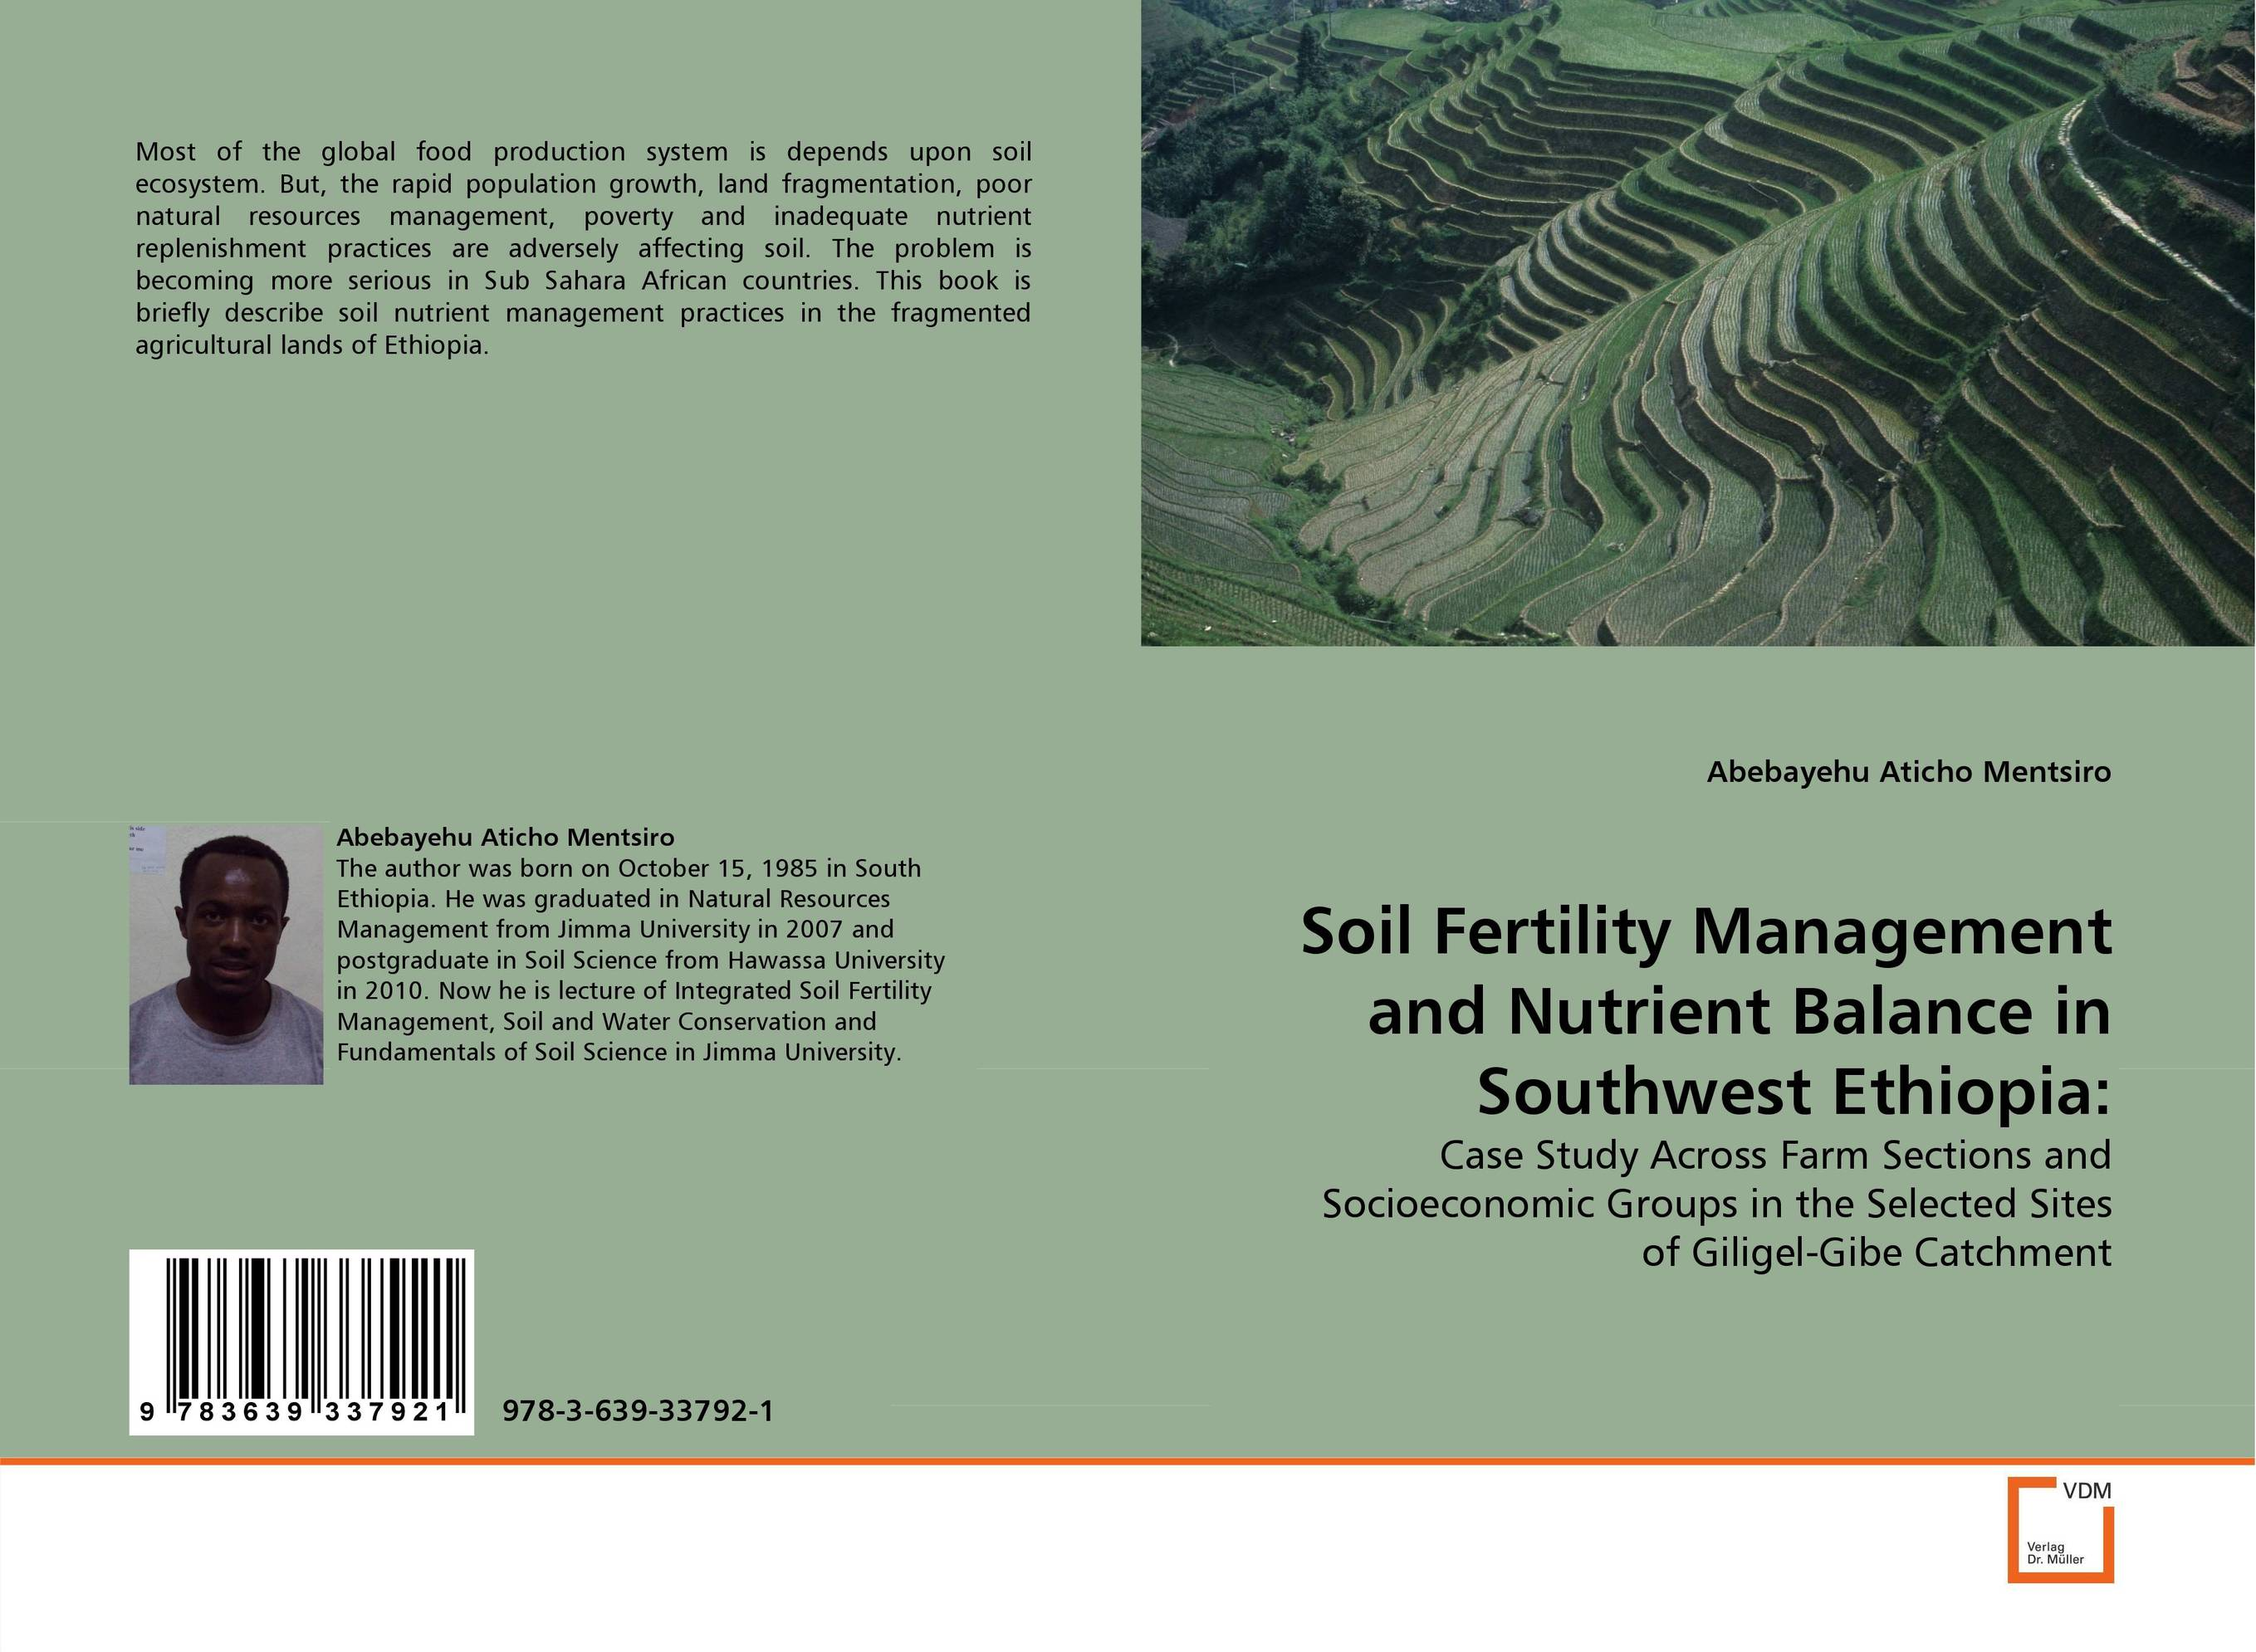 Soil Fertility Management and Nutrient Balance in Southwest Ethiopia: sarah cheroben and cheroben integrated soil fertility management and marketing of farm produce